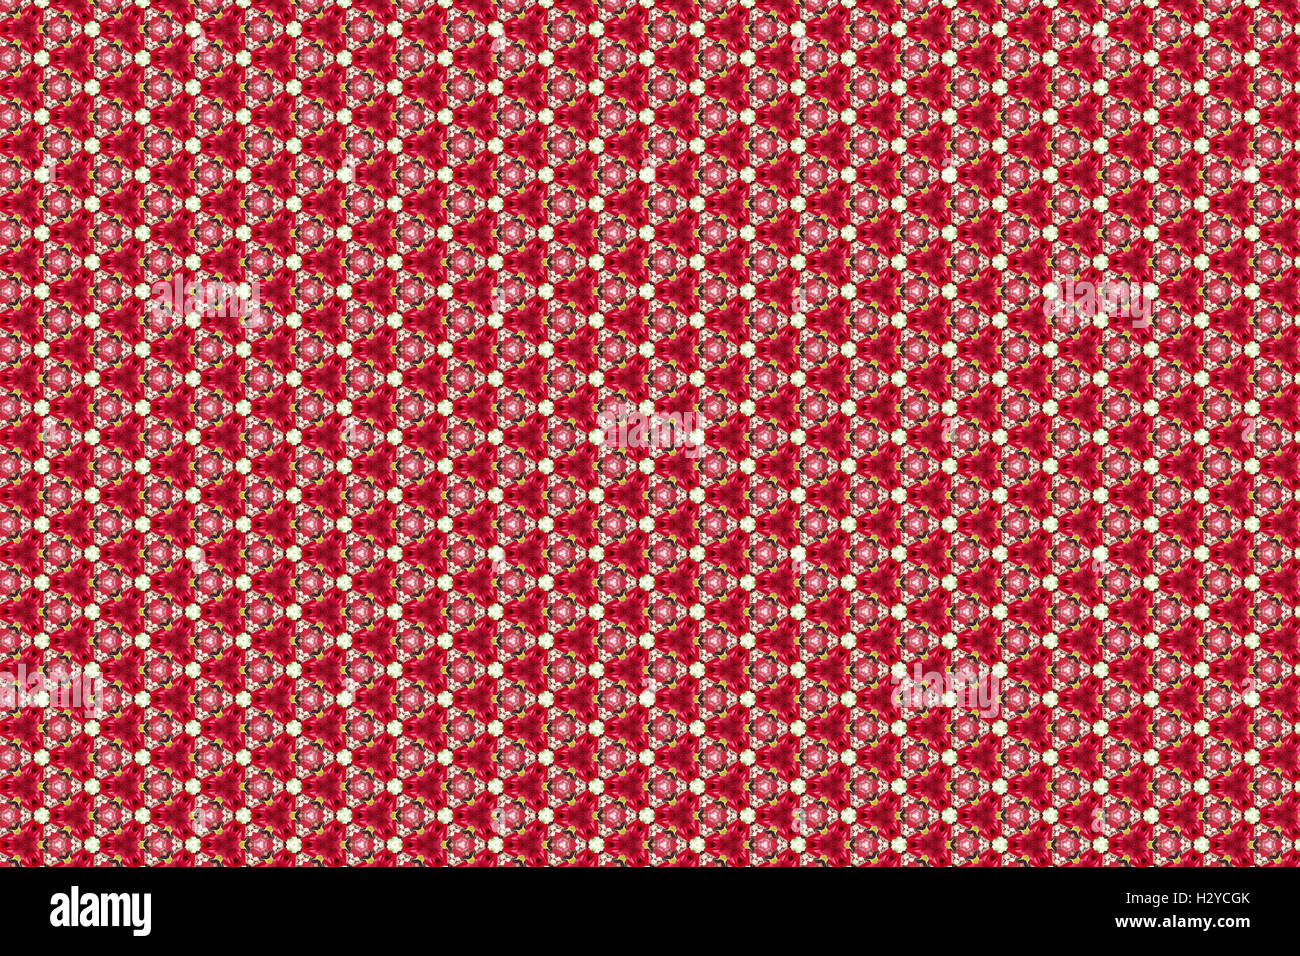 floral pattern wallpaper background - Stock Image